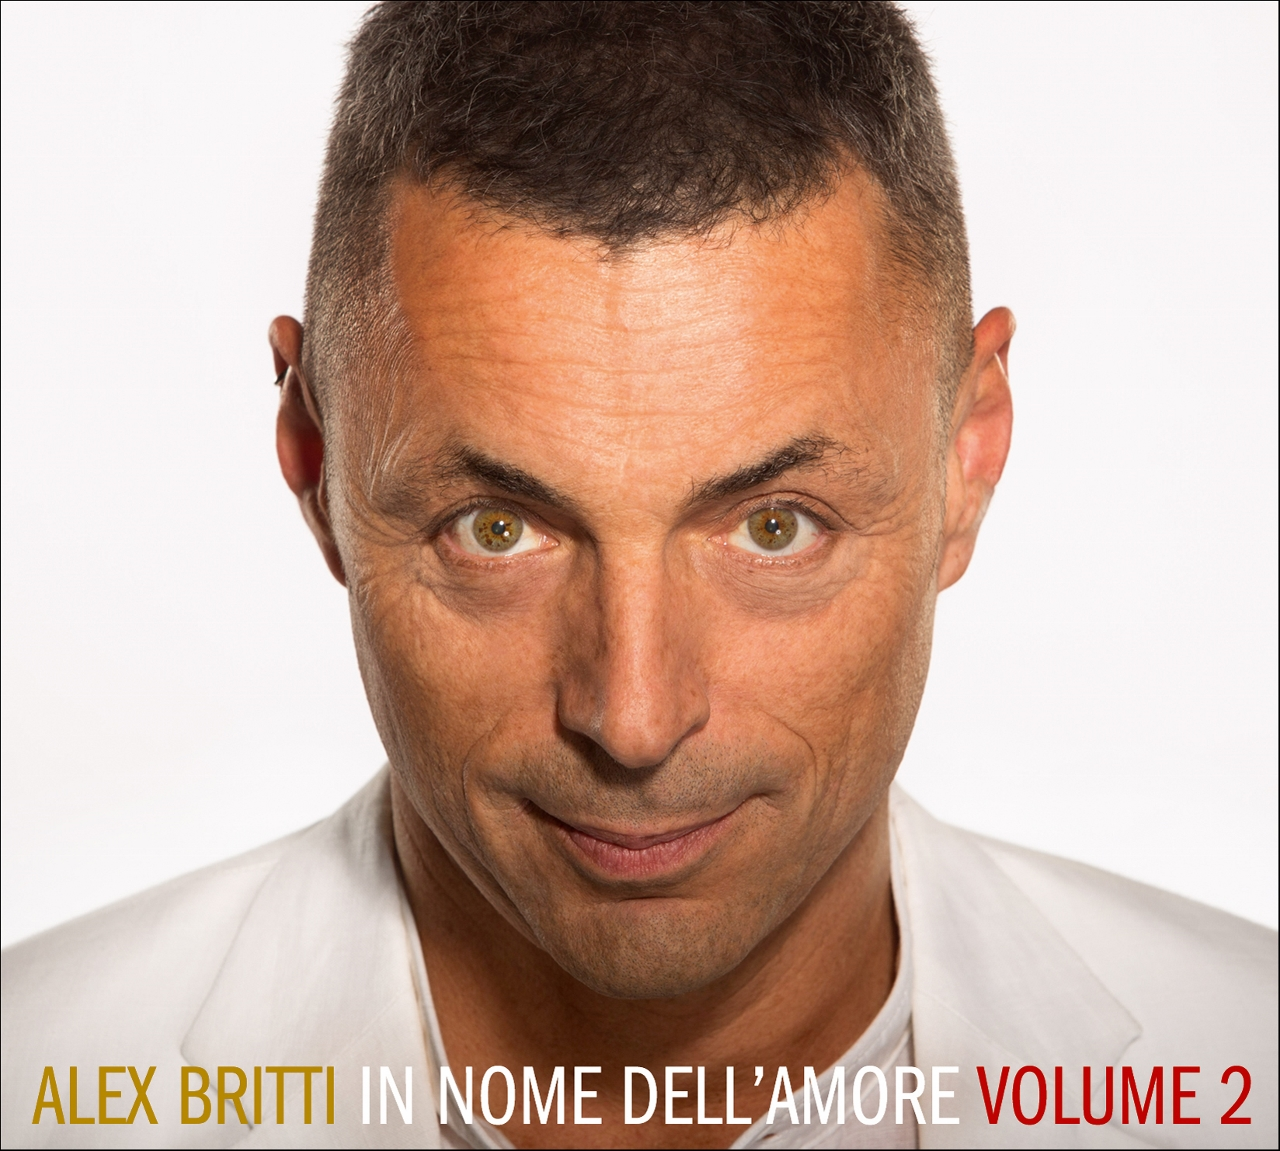 IN NOME DELL'AMORE volume 2 ALEX BRITTI